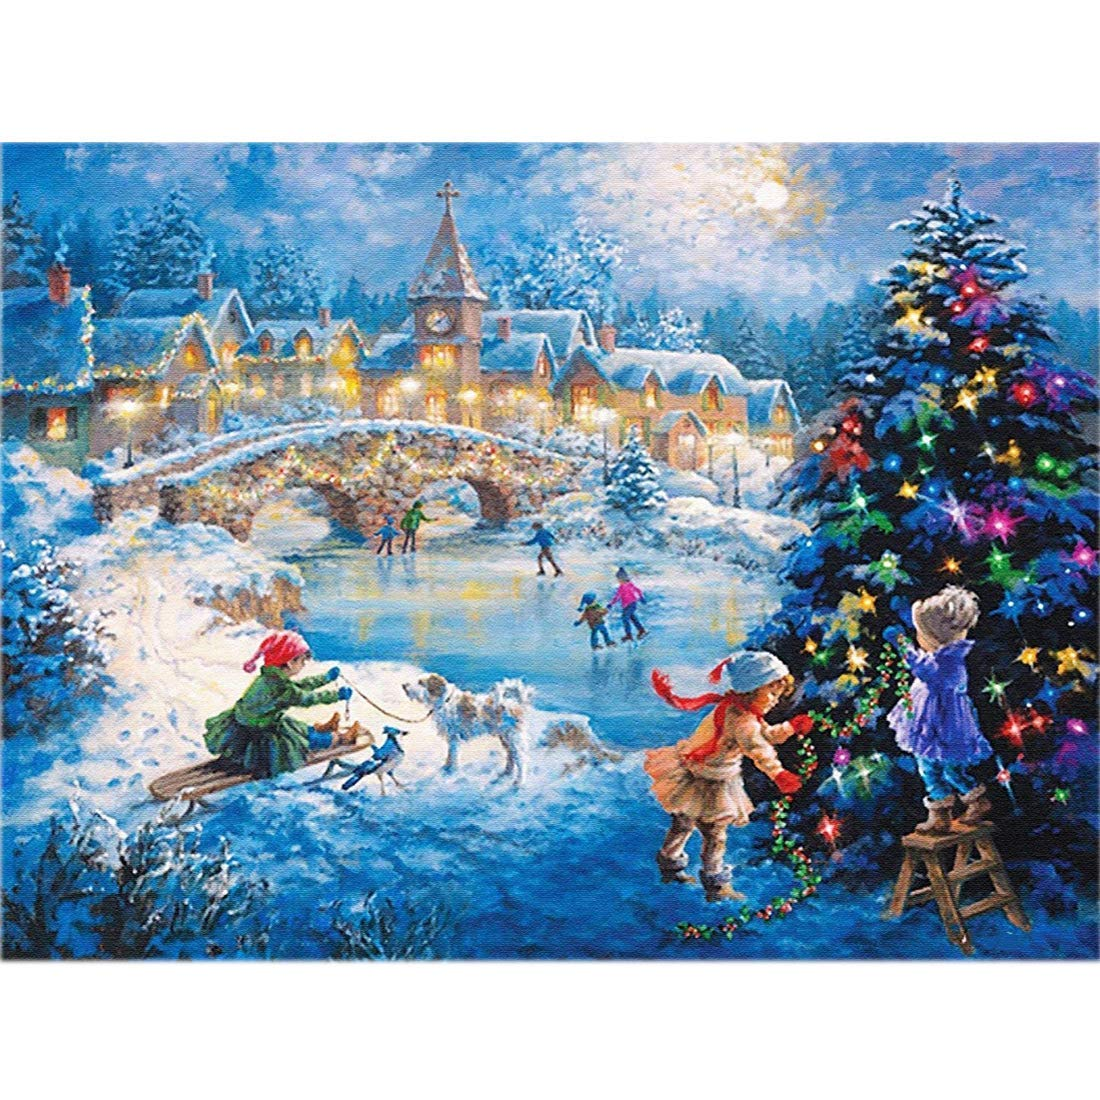 5D Diamond Painting Kits for Adults 57x45CM//22x18inch Full Diamond Cross Stitch Christmas Village by TOCARE